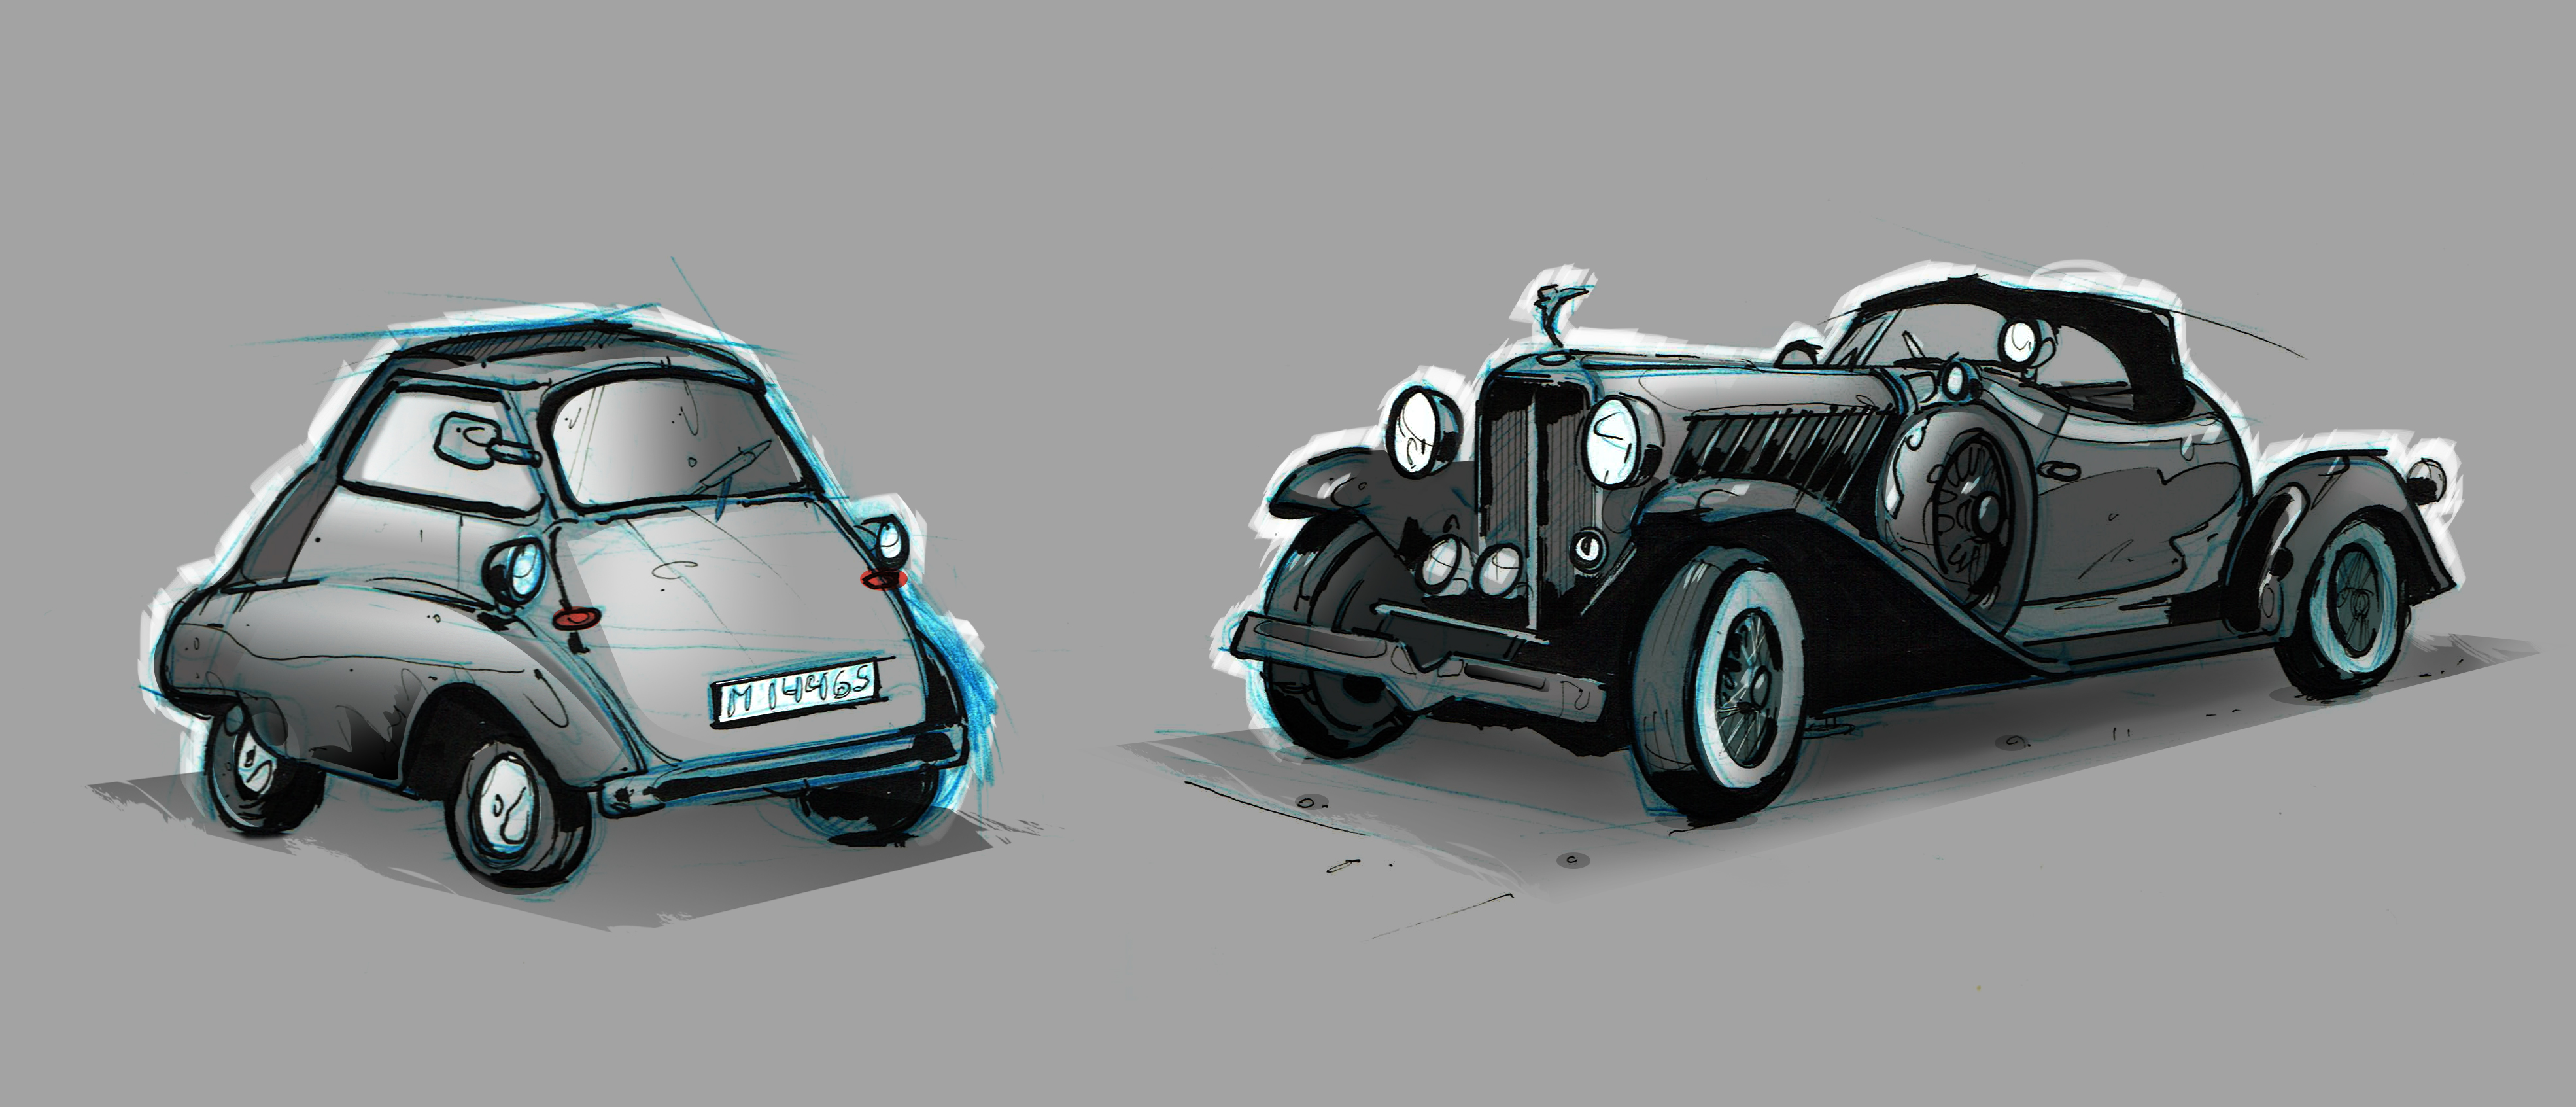 05 car sketches